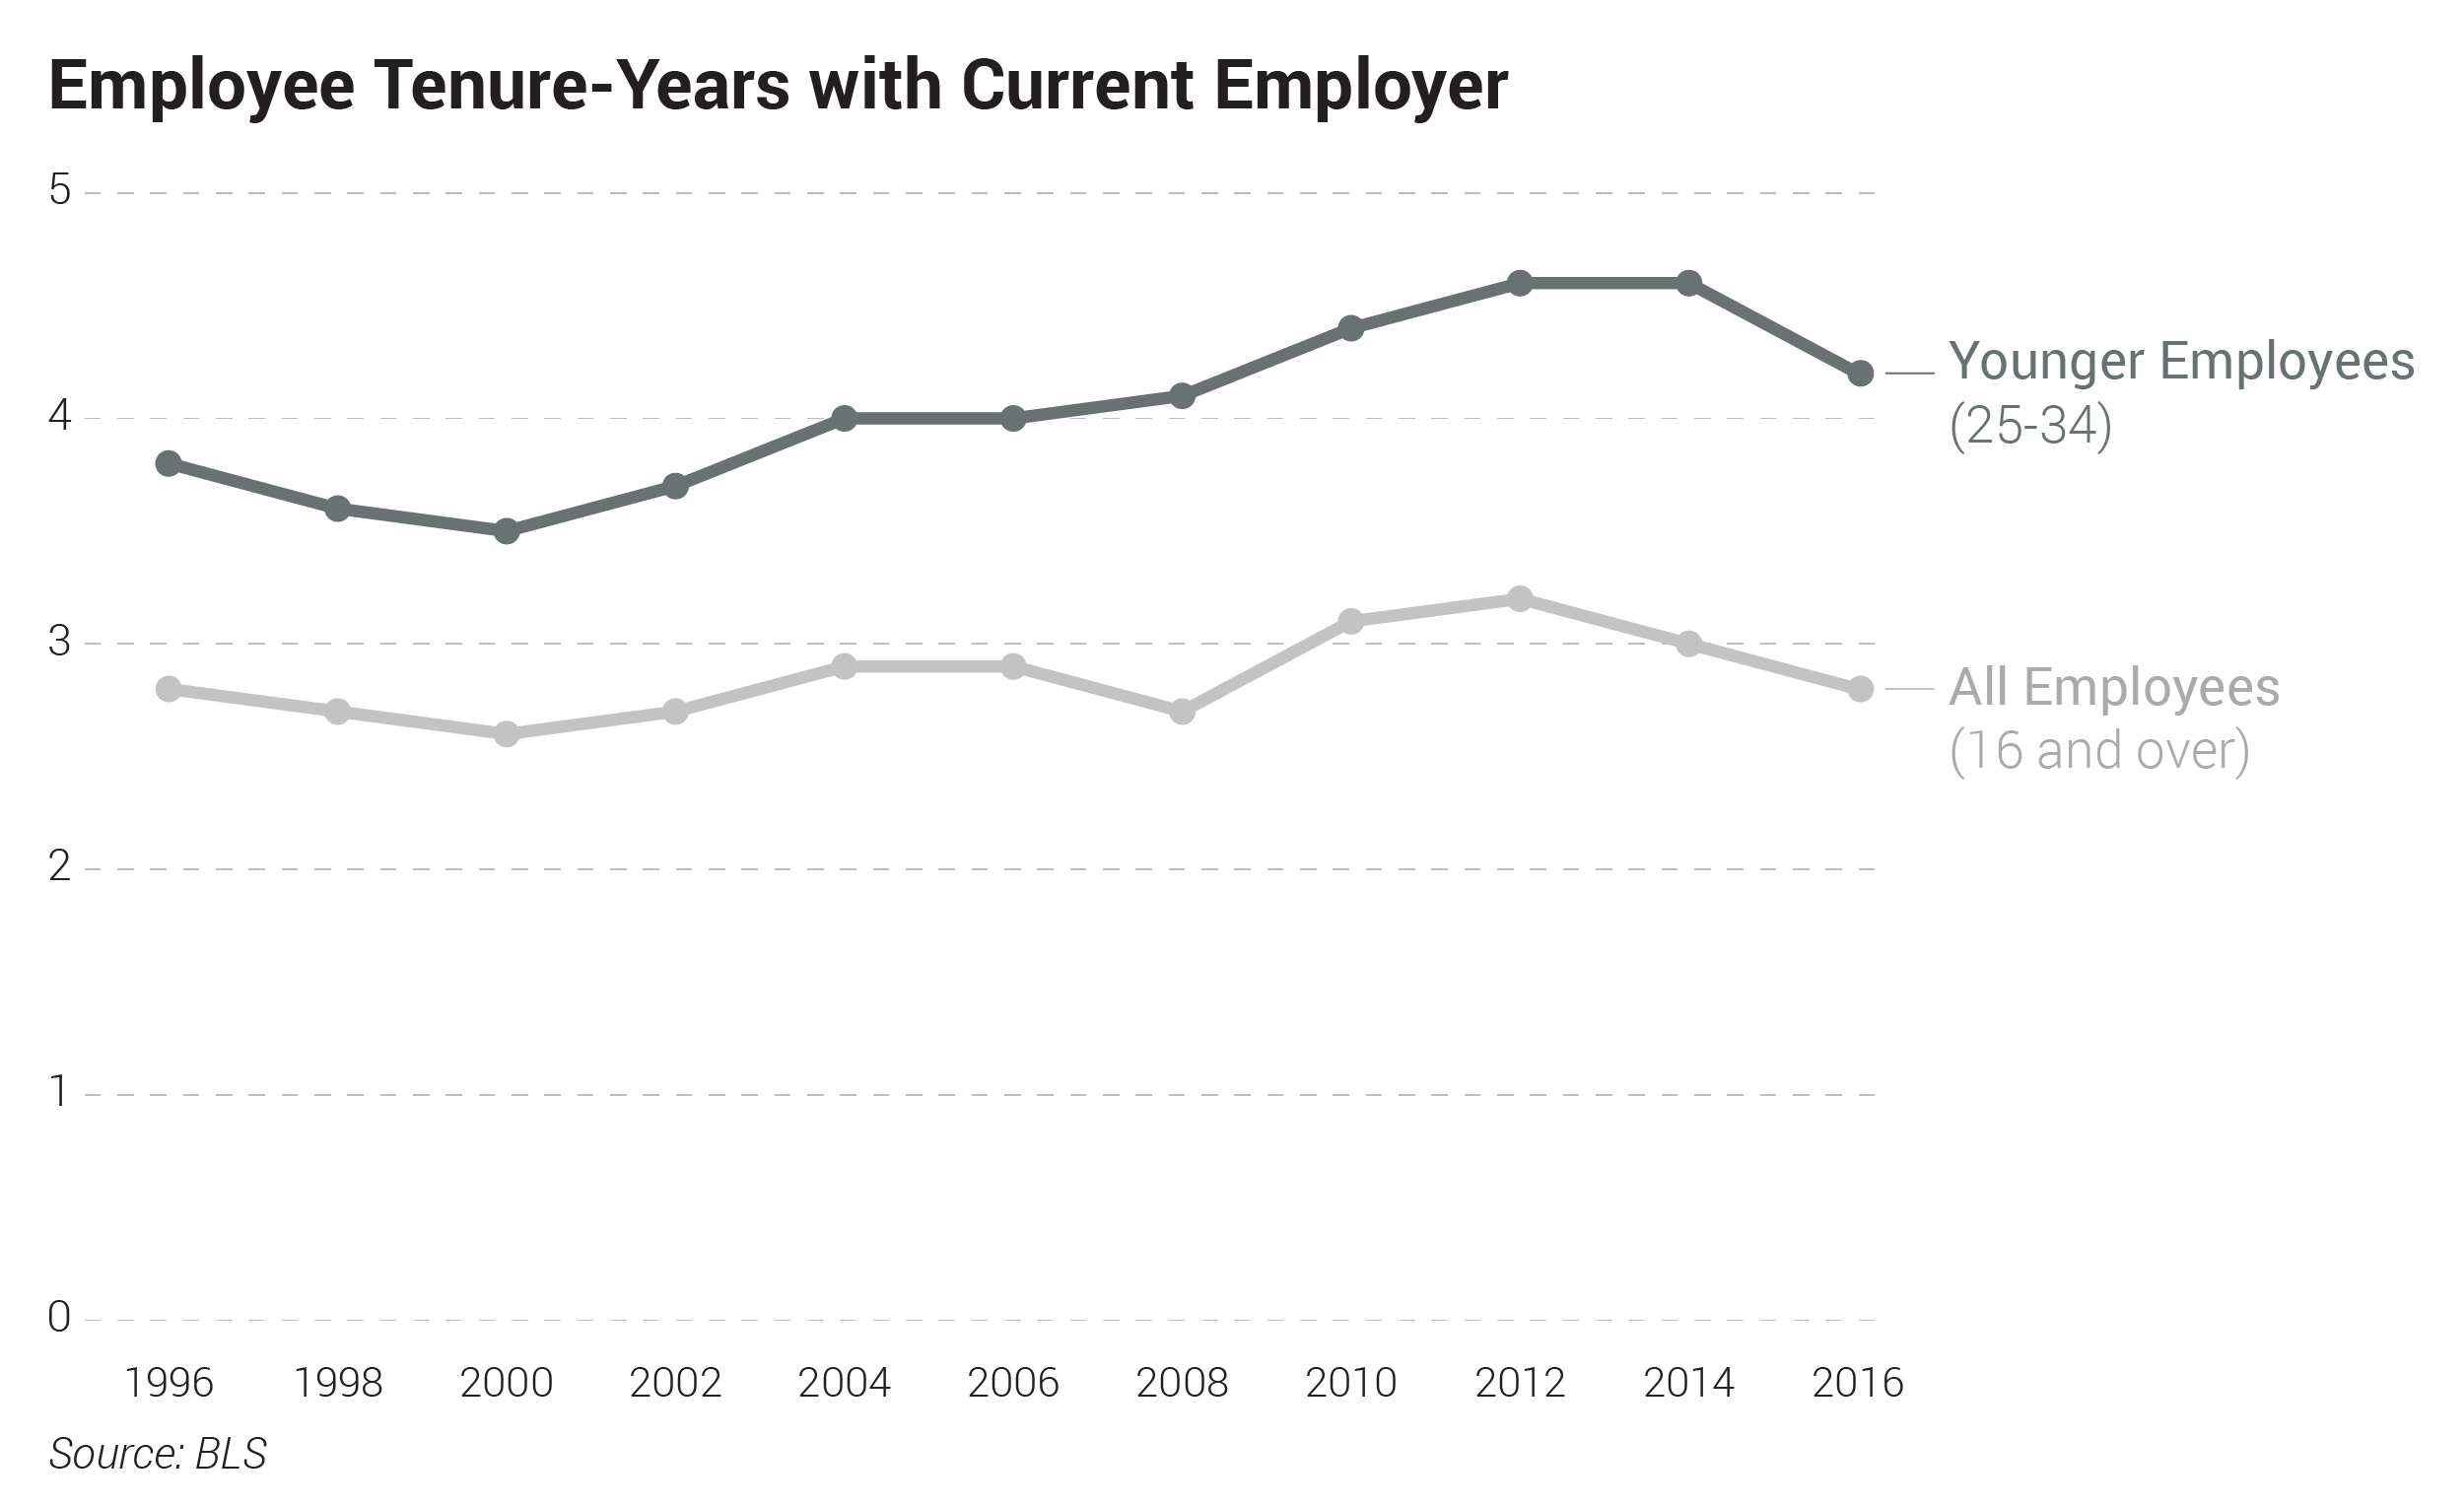 Employee Tenure-Years with Current Employer